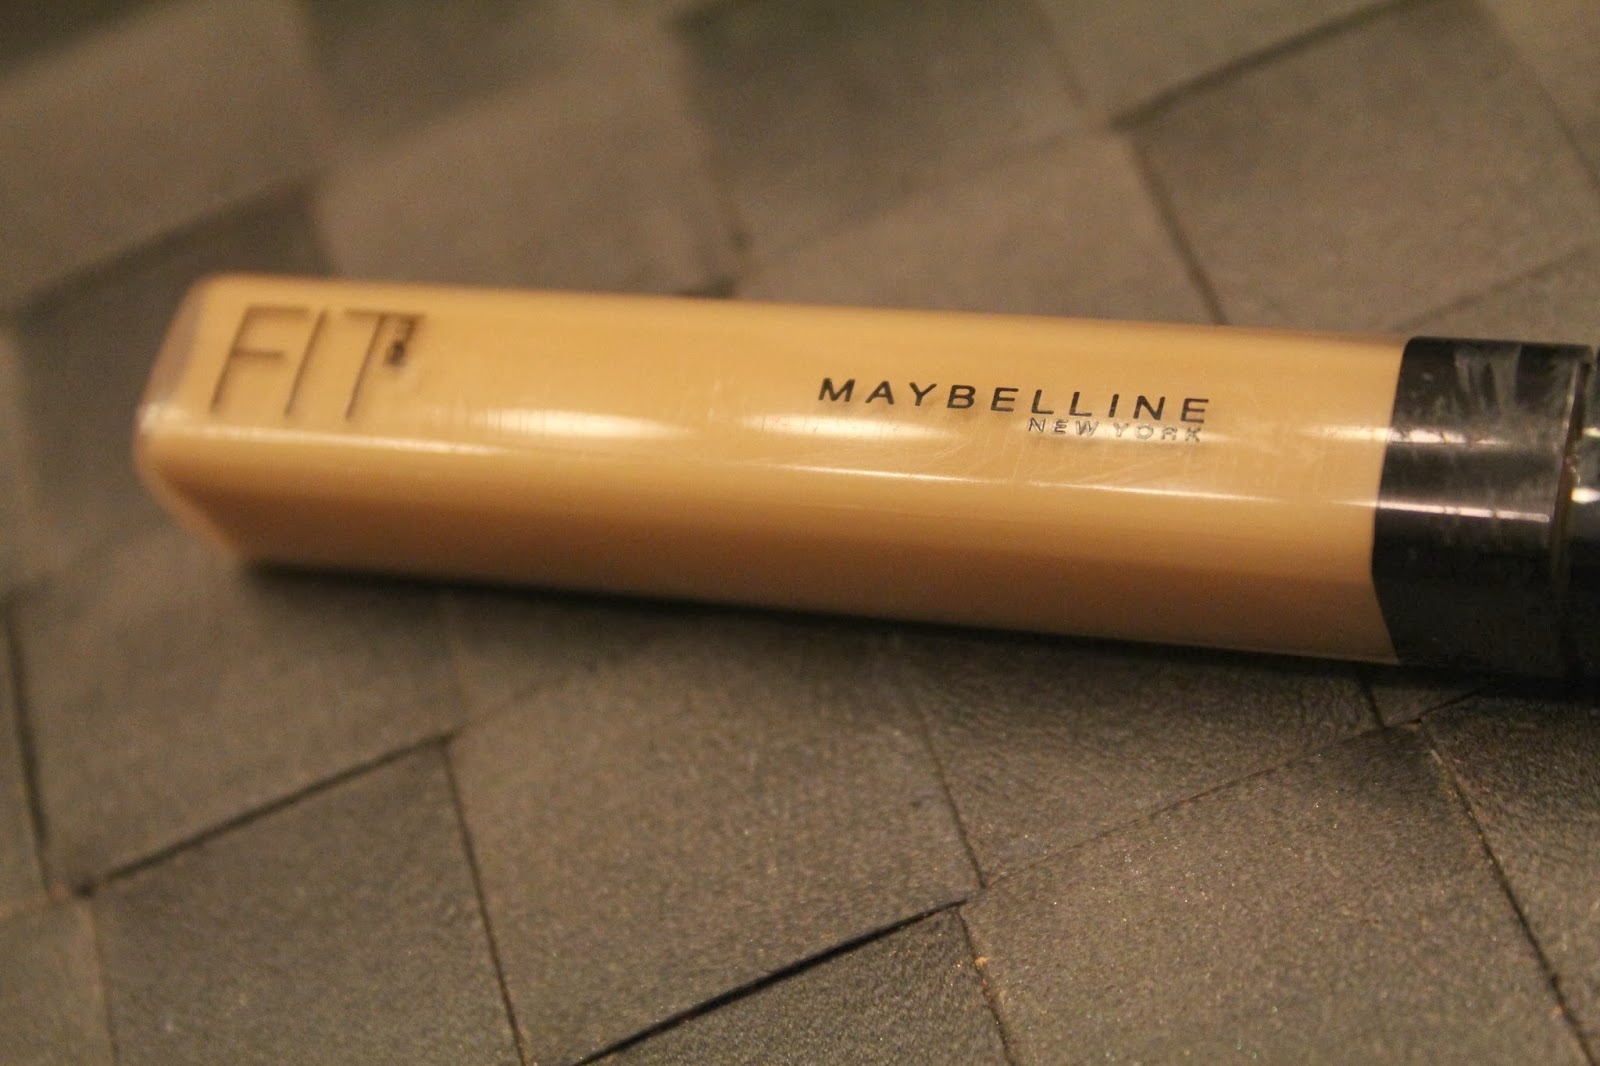 Susibeauty Xoxo Maybelline Fit Me Foundation Stick Review